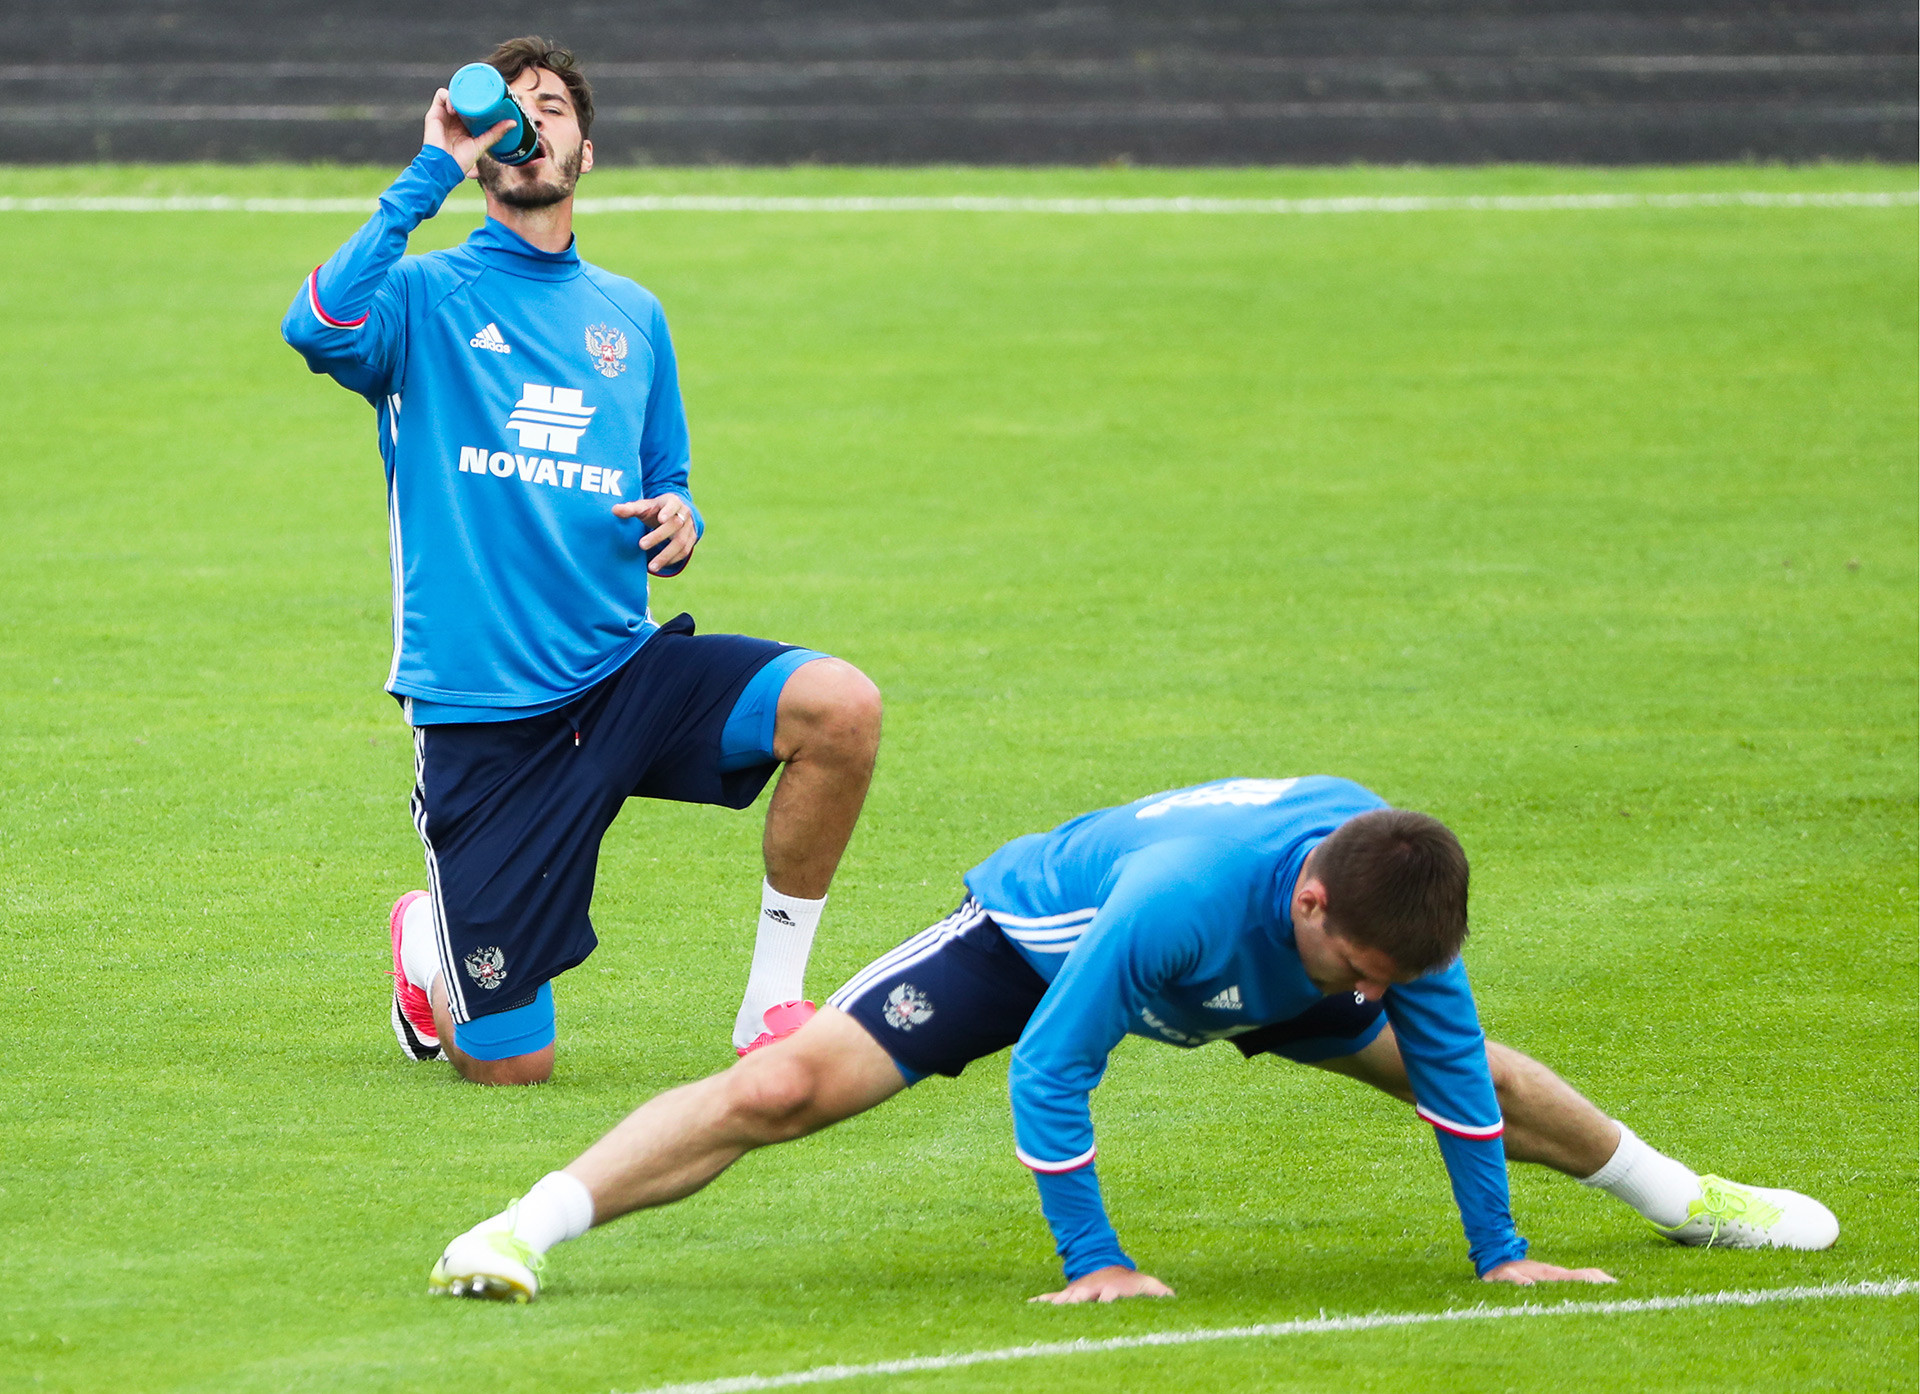 Russian national football team training ahead of friendly with Chile, June 2017.